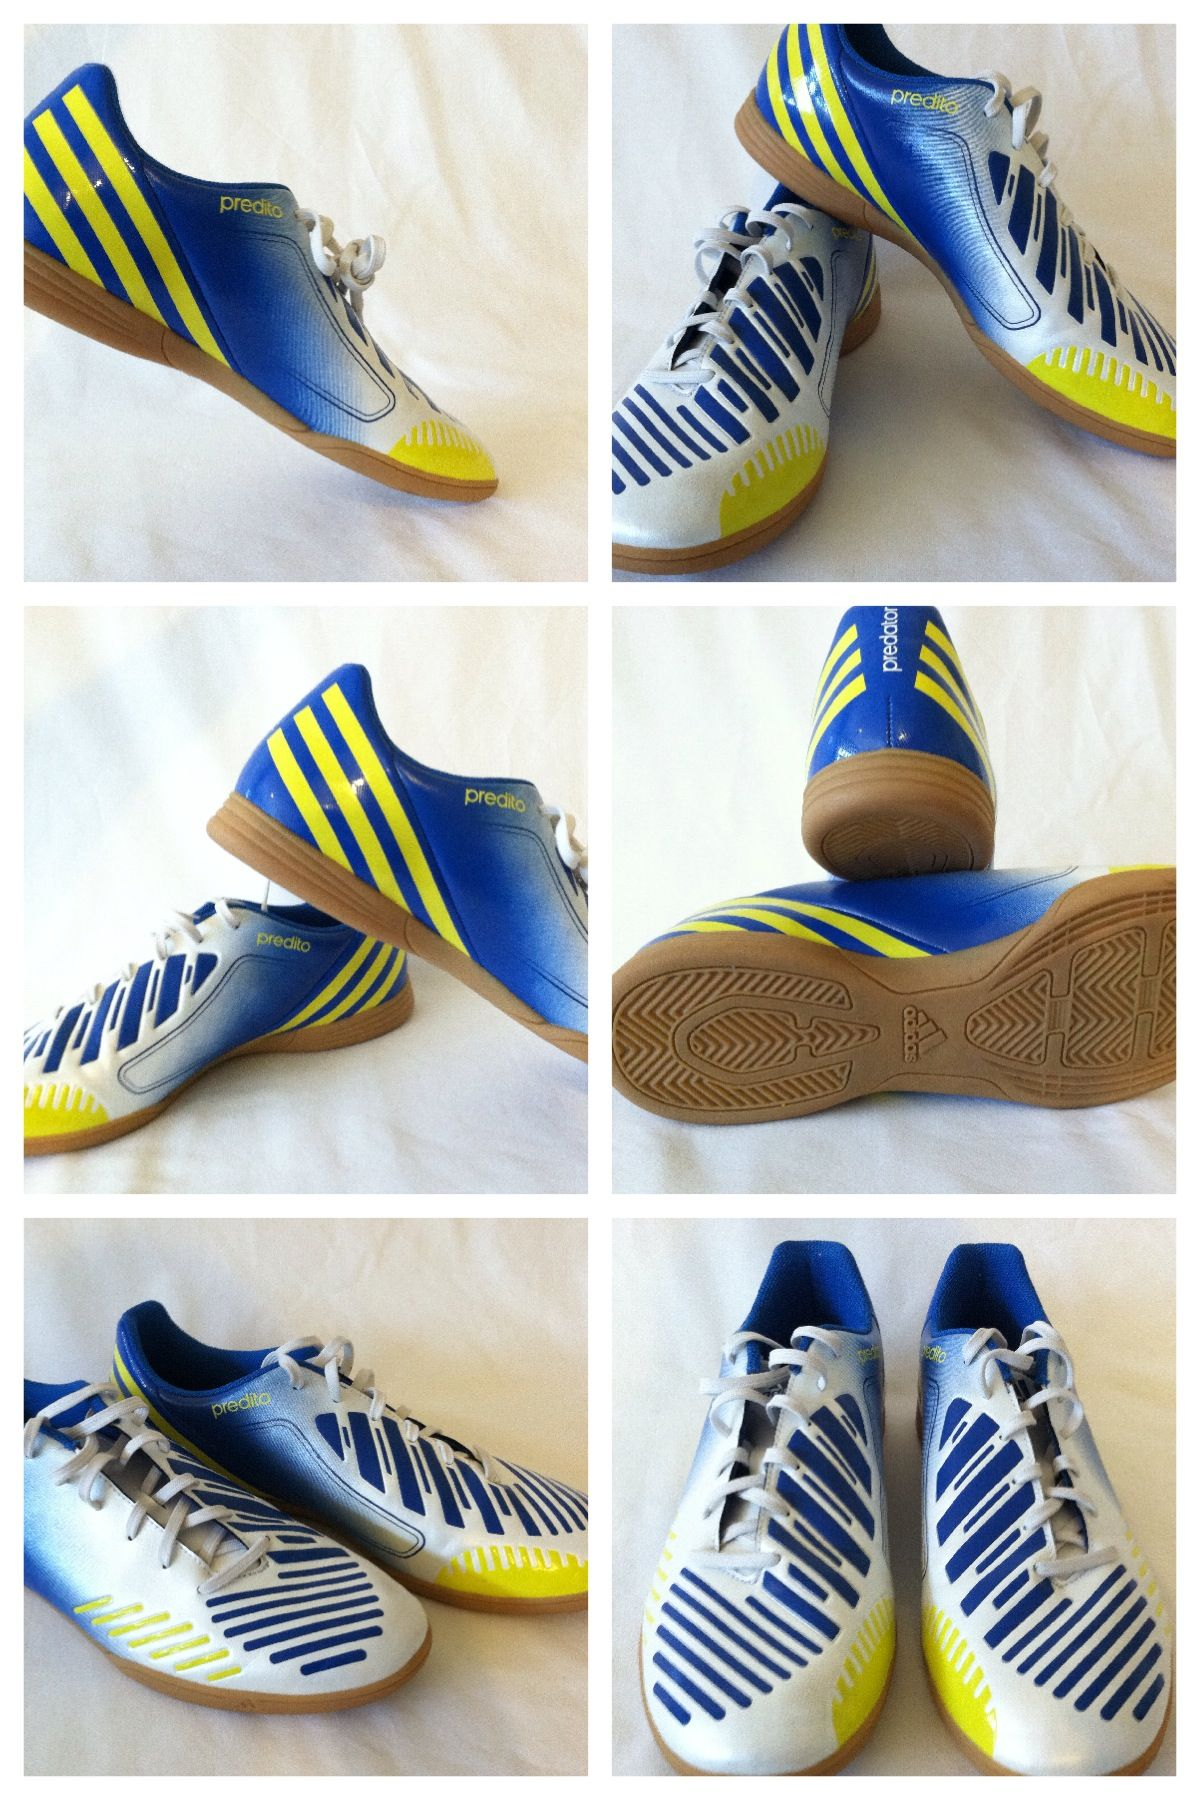 New Men Adidas Predator Athletic Indoor Soccer Shoes White Blue Yellow Size10 5 Soccer Shoes Futsal Shoes Soccer Boots